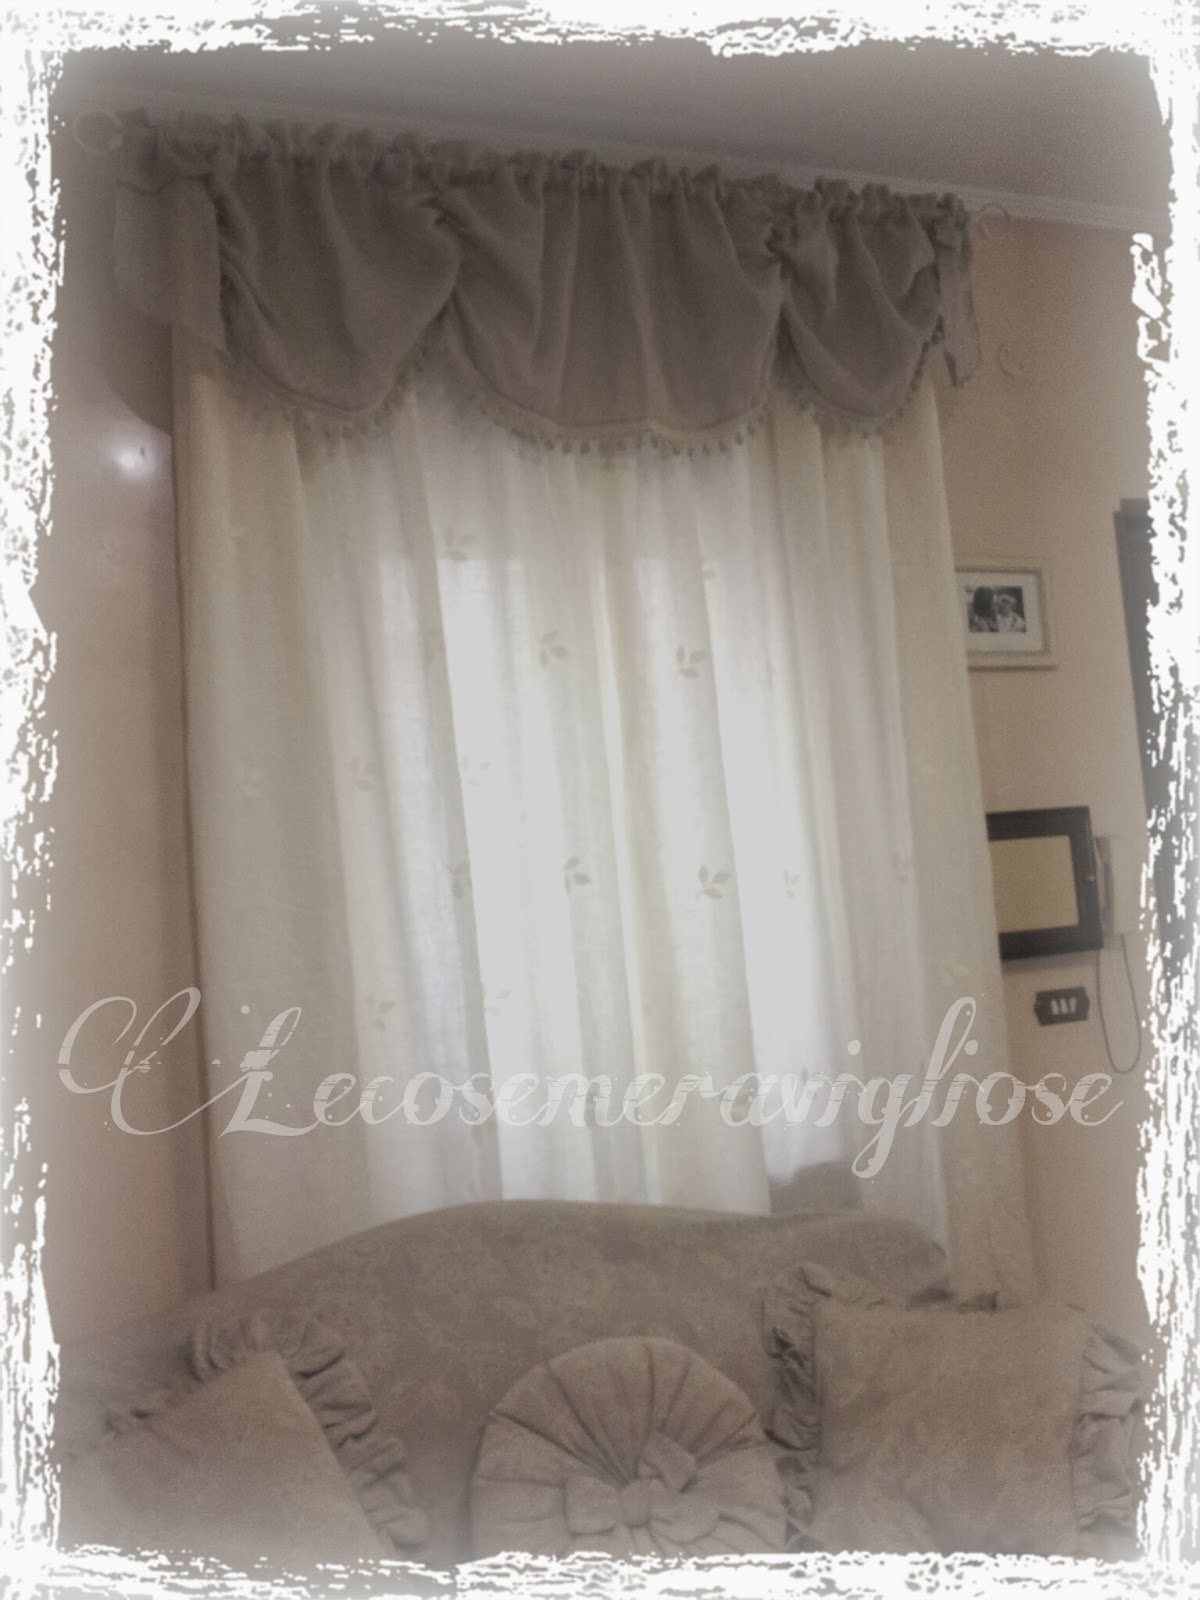 Lecosemeravigliose shabby e country chic passions tende cuscini e complementi creativi country - Tende country per camera da letto ...